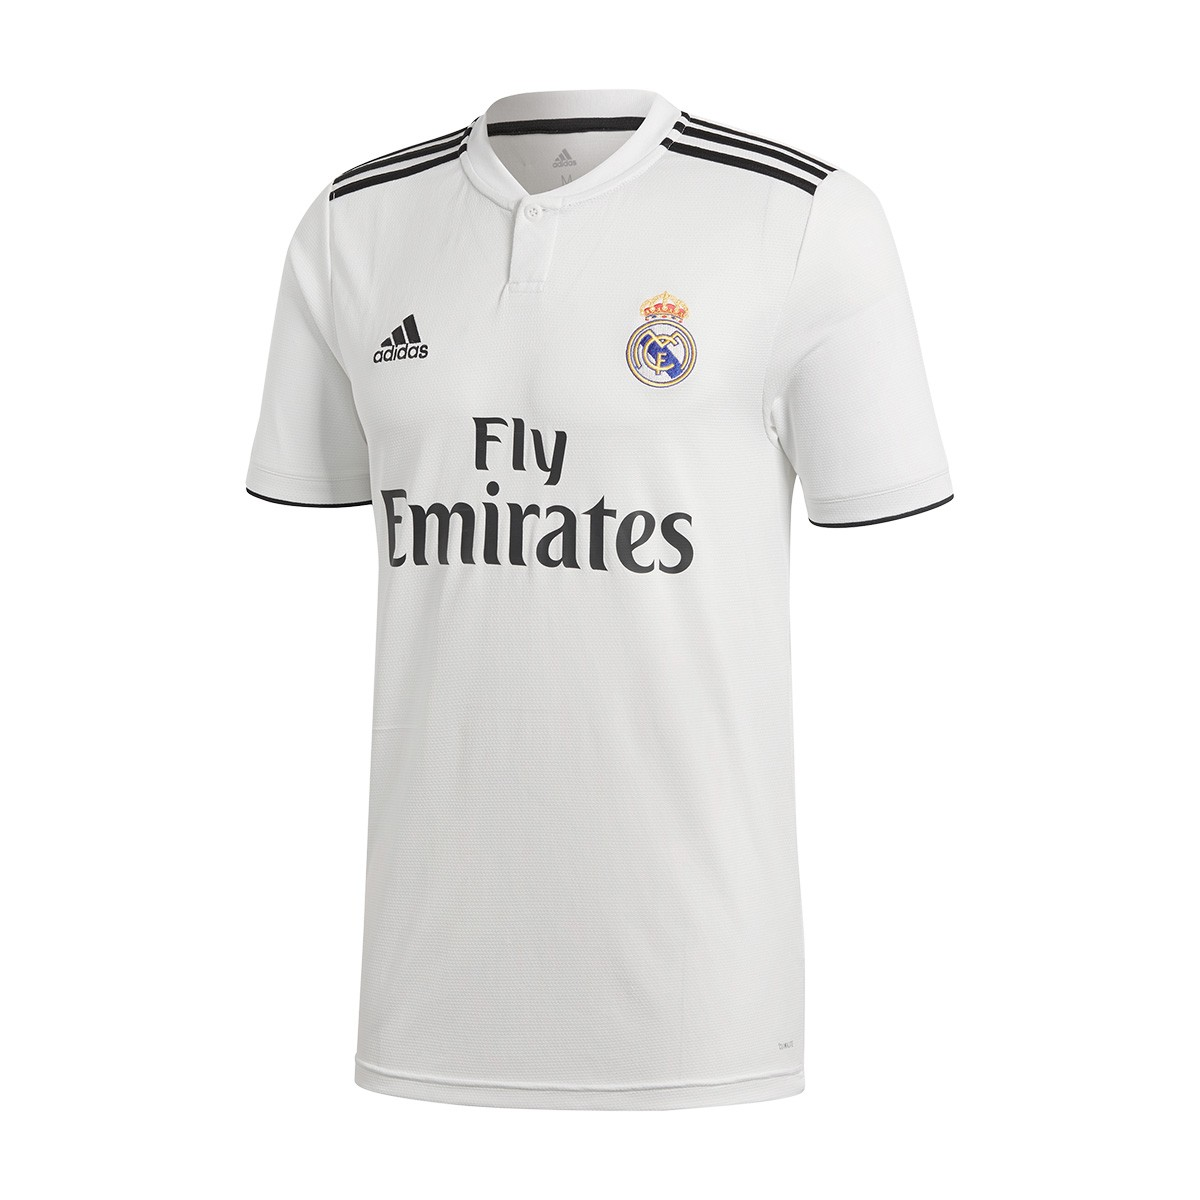 1e54537e Jersey adidas Real Madrid 2018-2019 Home White-black - Football ...